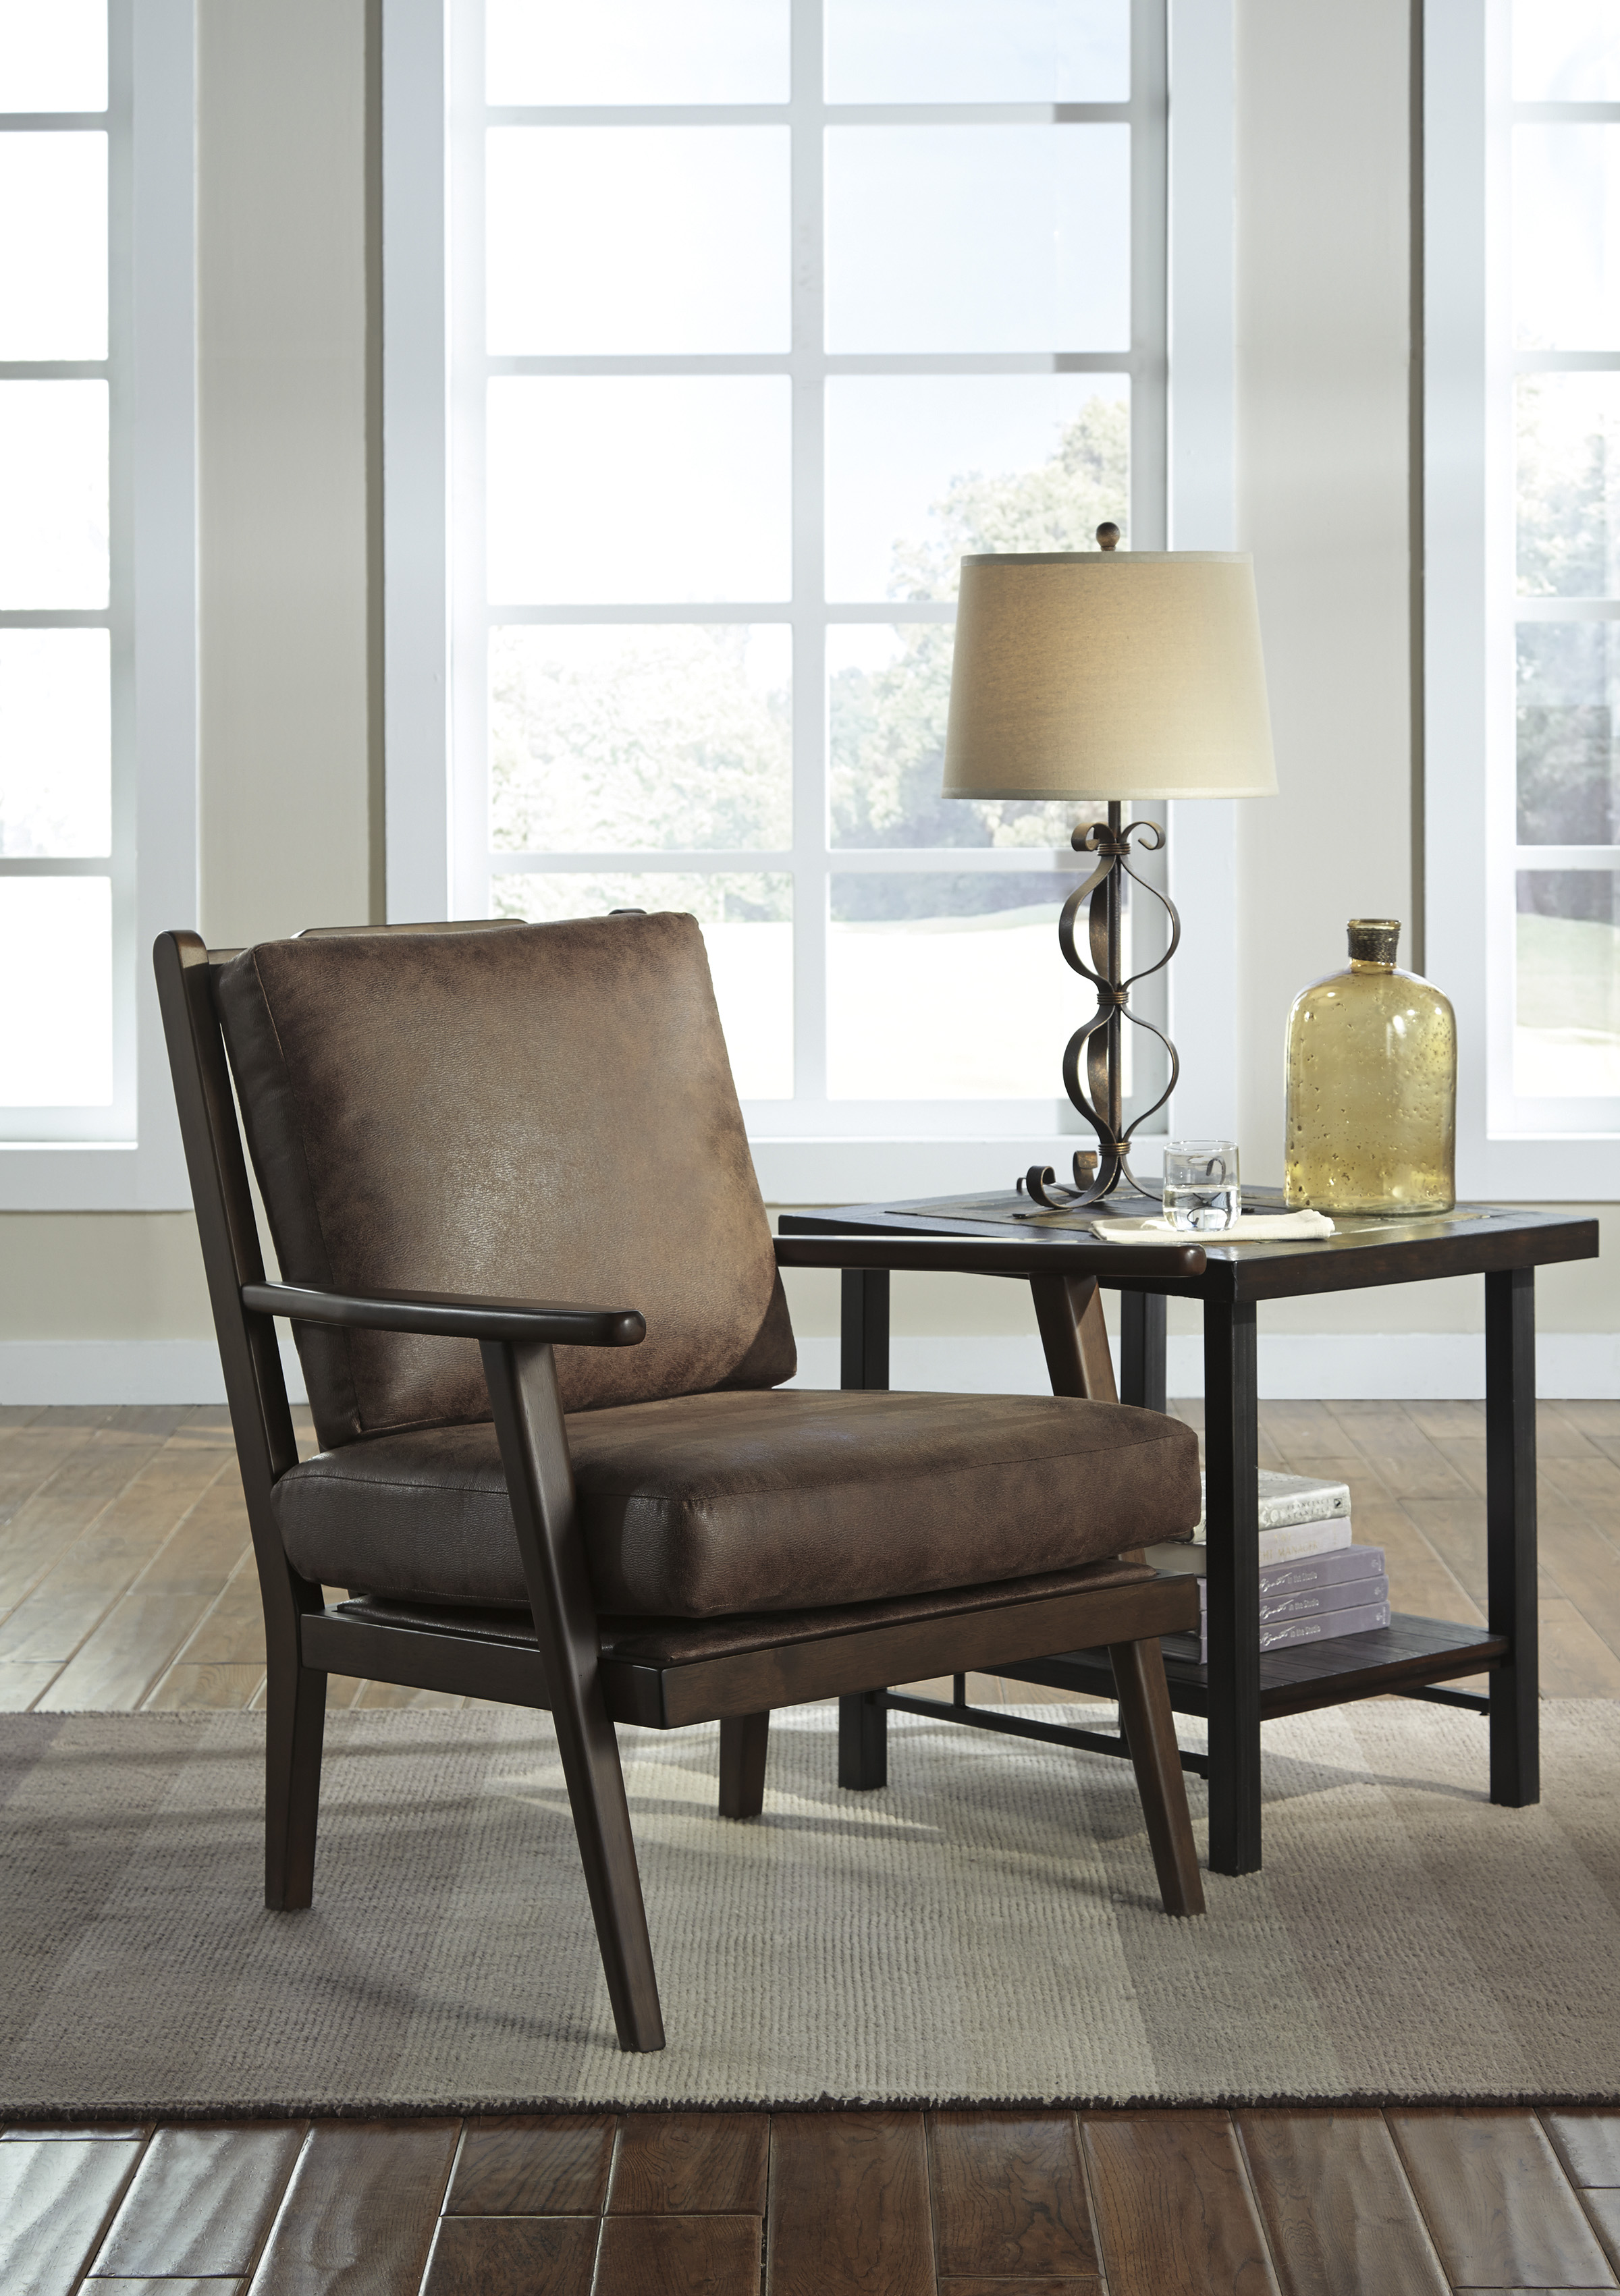 tanacra accent chair dallas tx living room chair